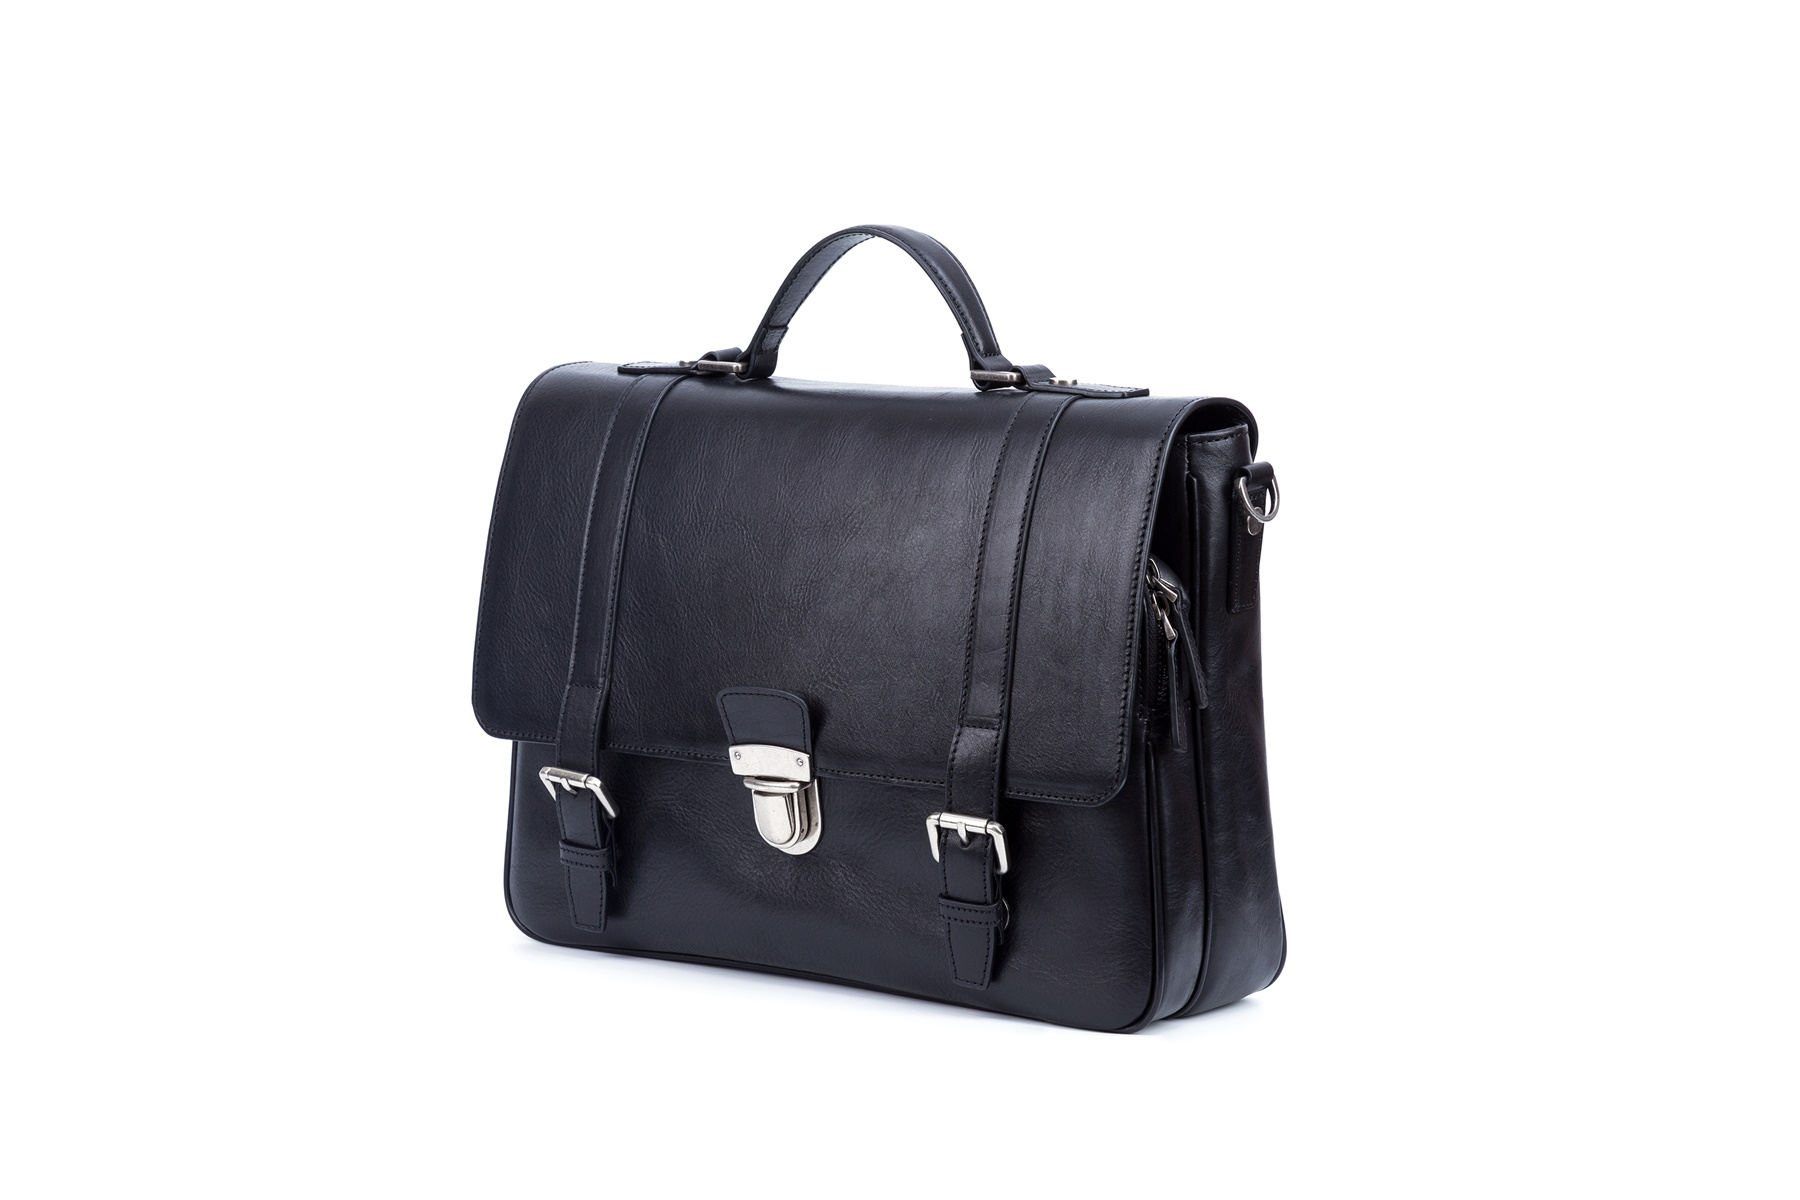 GF bags-Find Business Bag Mens Fashion Messenger Bag From GF Bags-5